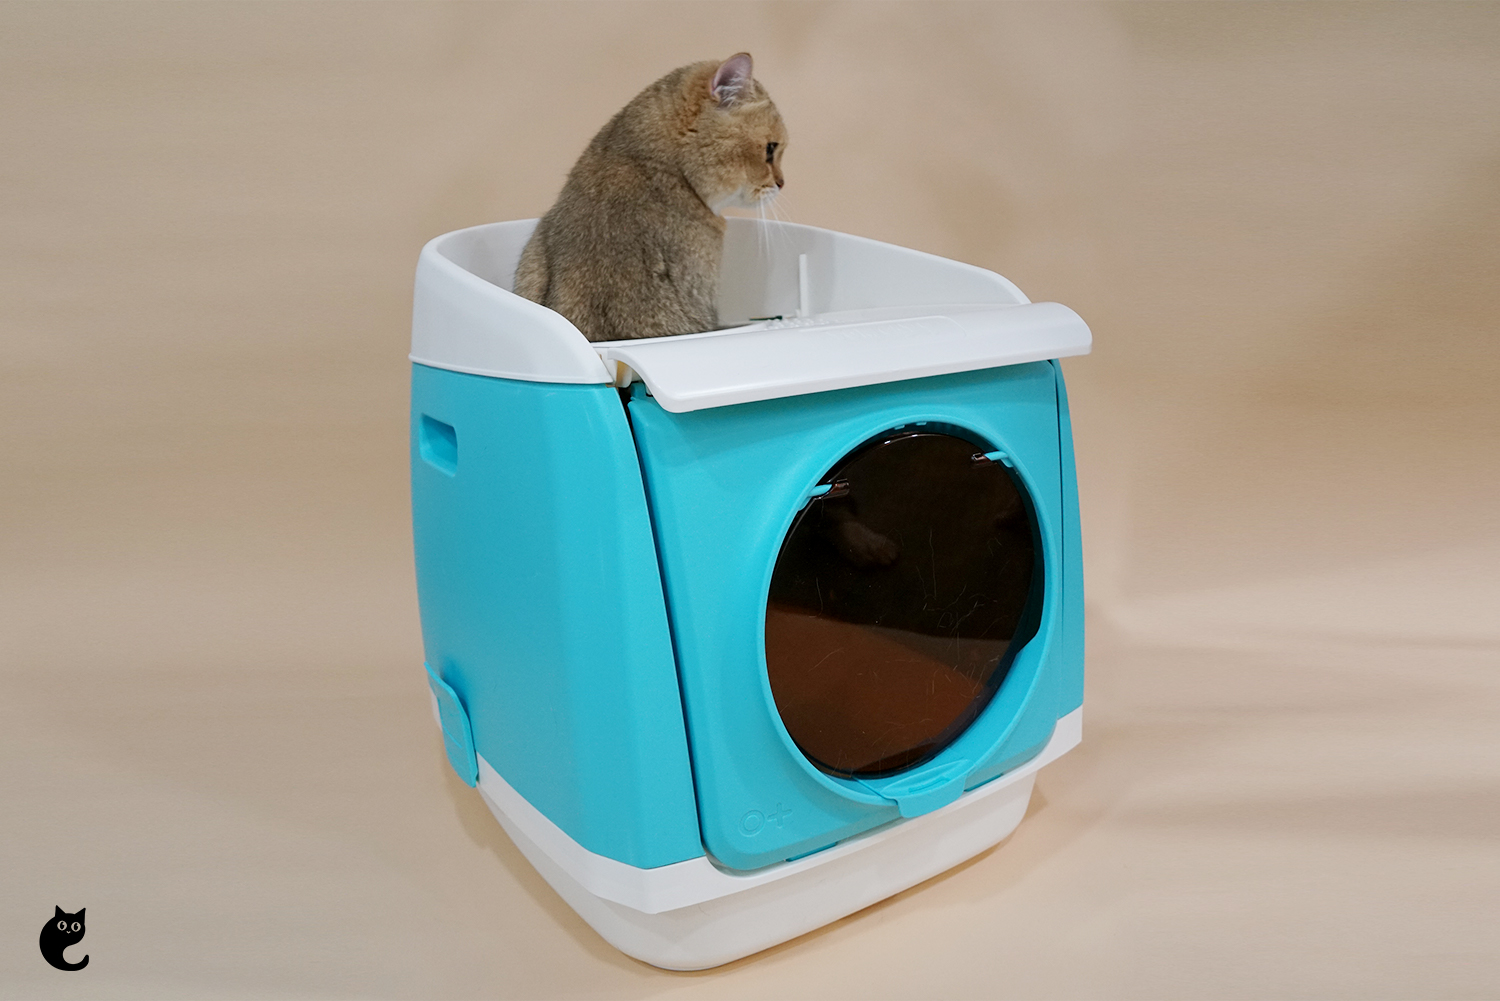 How Can I Transit My Cat To A Hooded Litter Box?